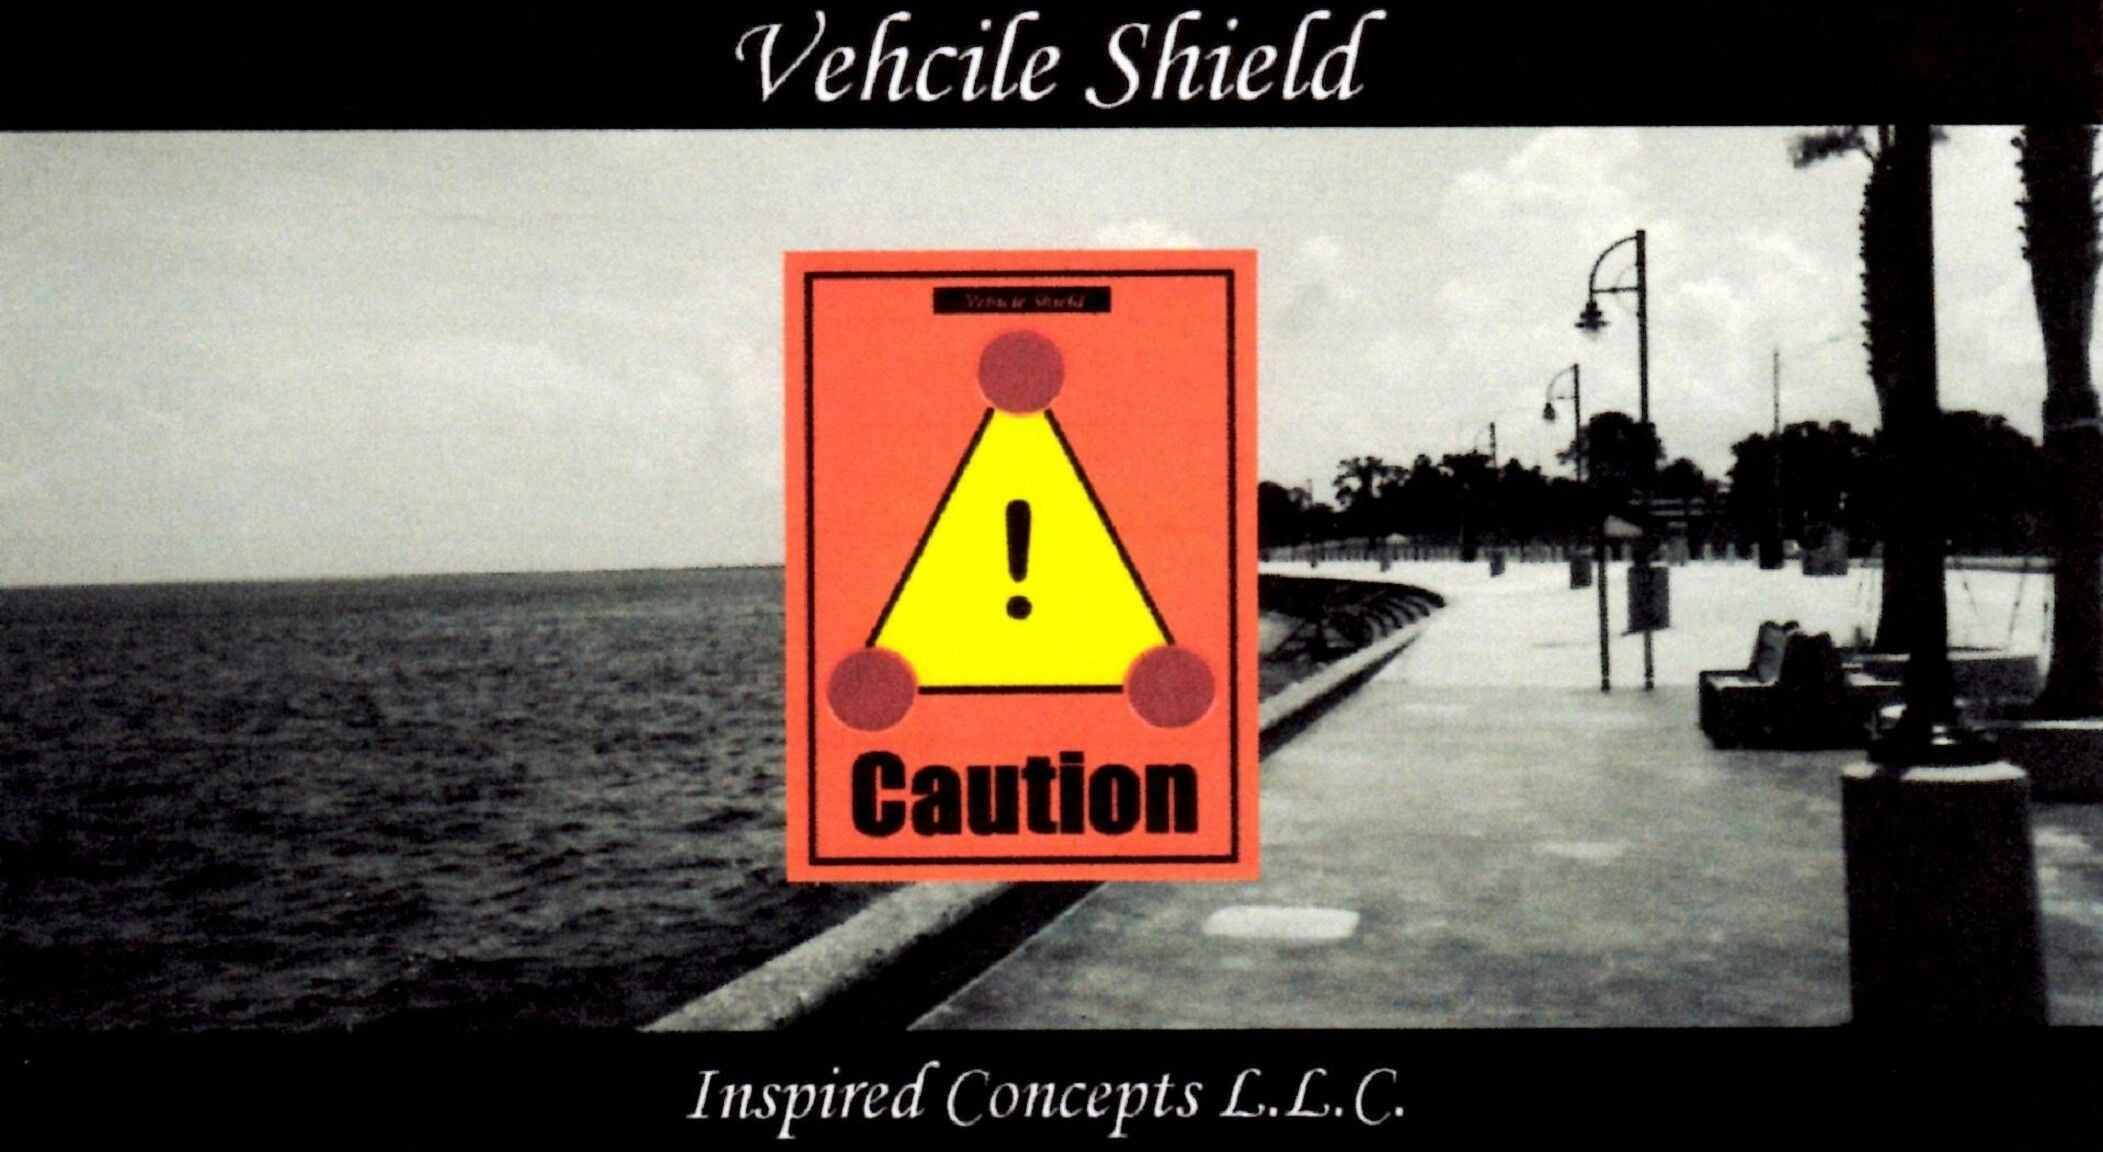 Have you ever been stranded vehicle shield is a sign that